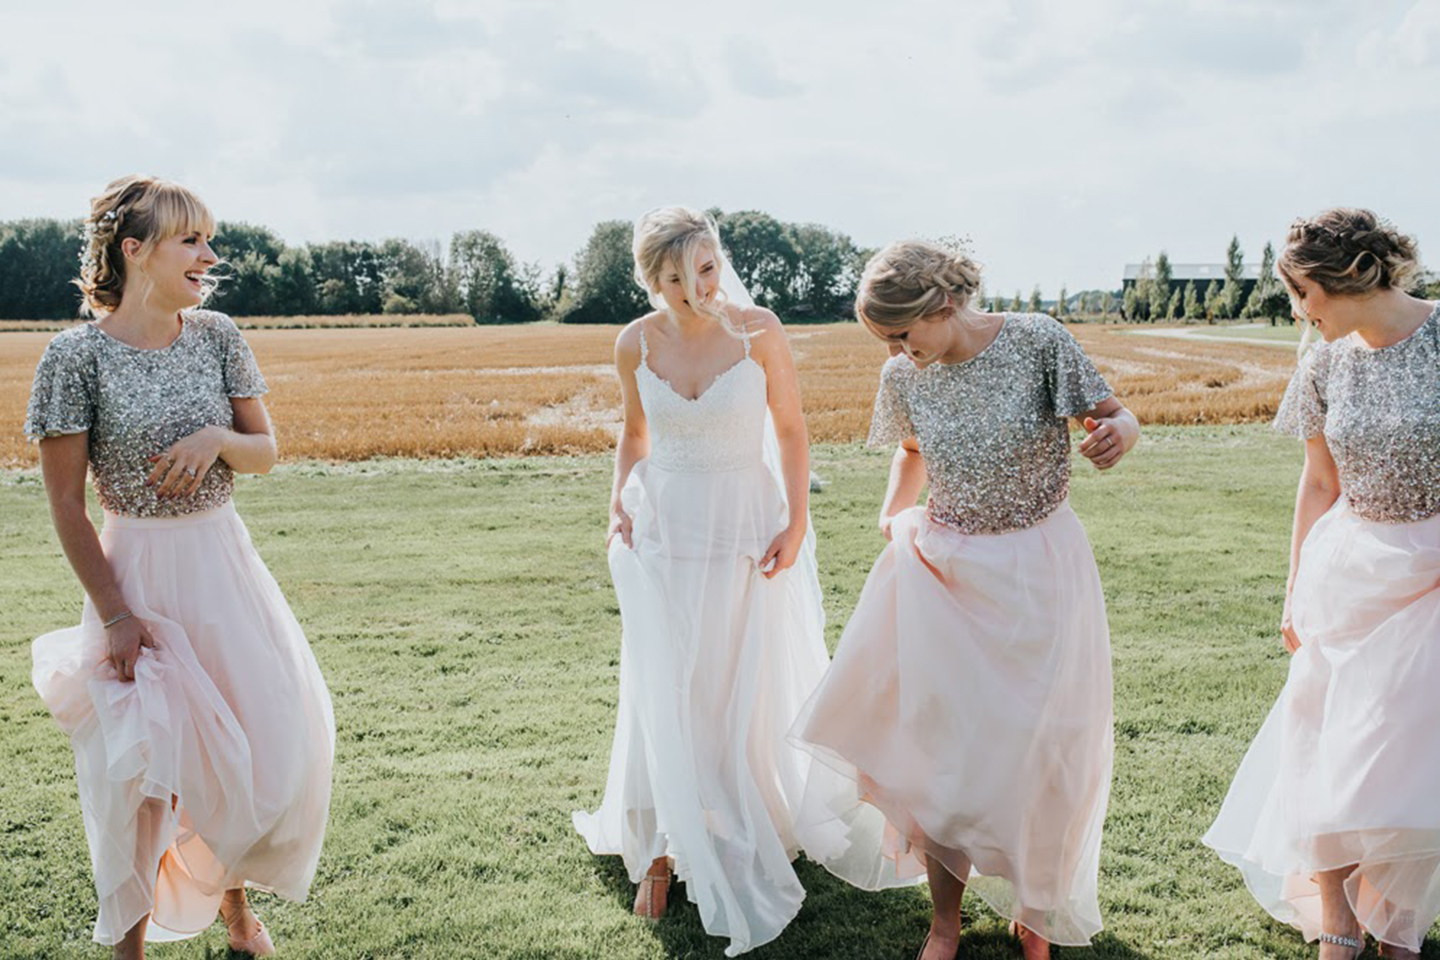 The bridesmaids wore sequin rose gold two piece dresses for this summer wedding at Bassmead Manor Barns